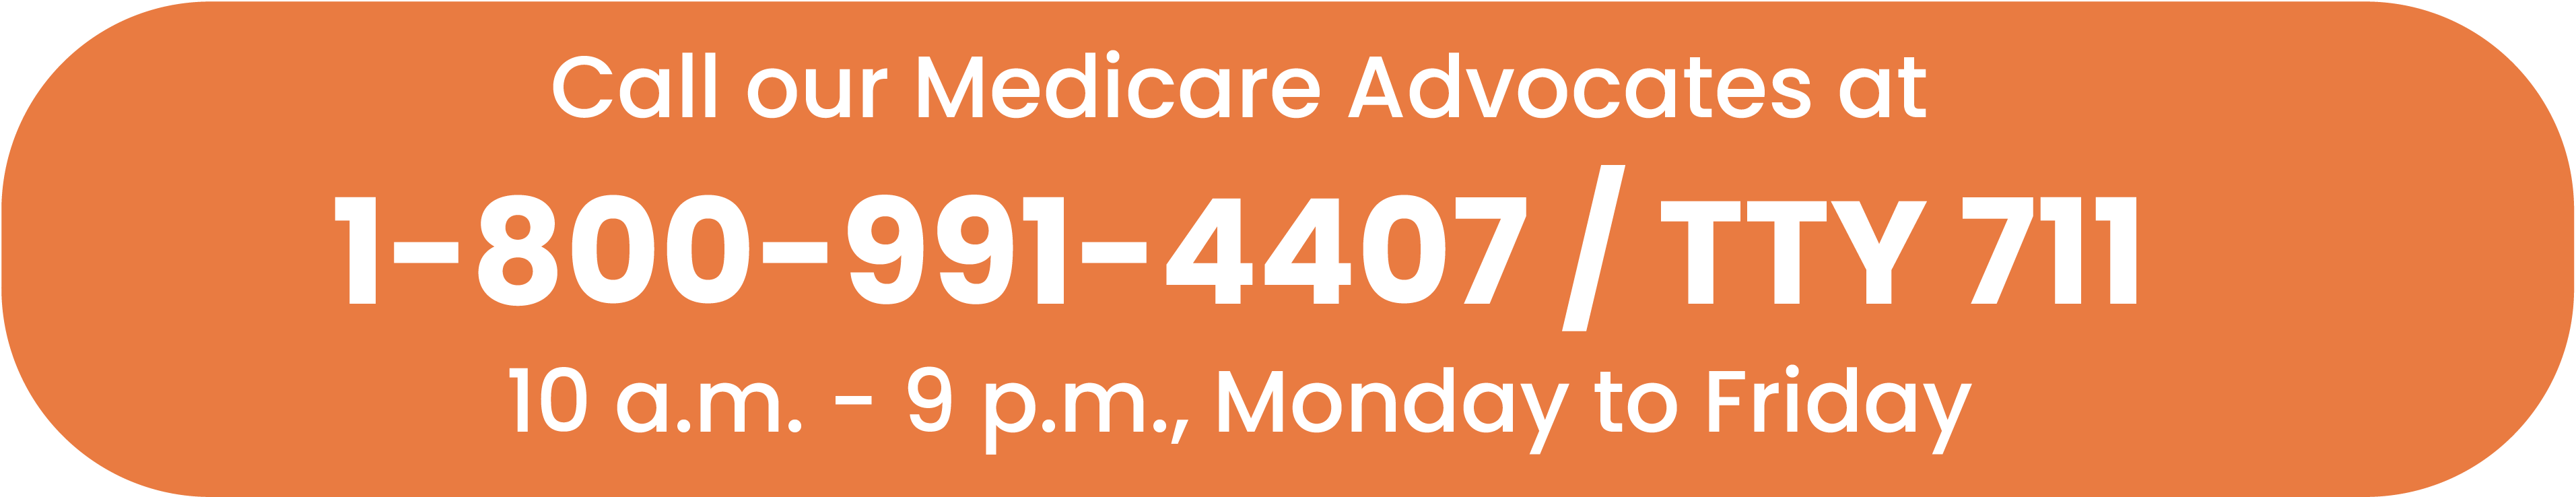 call-our-medicare-advocates